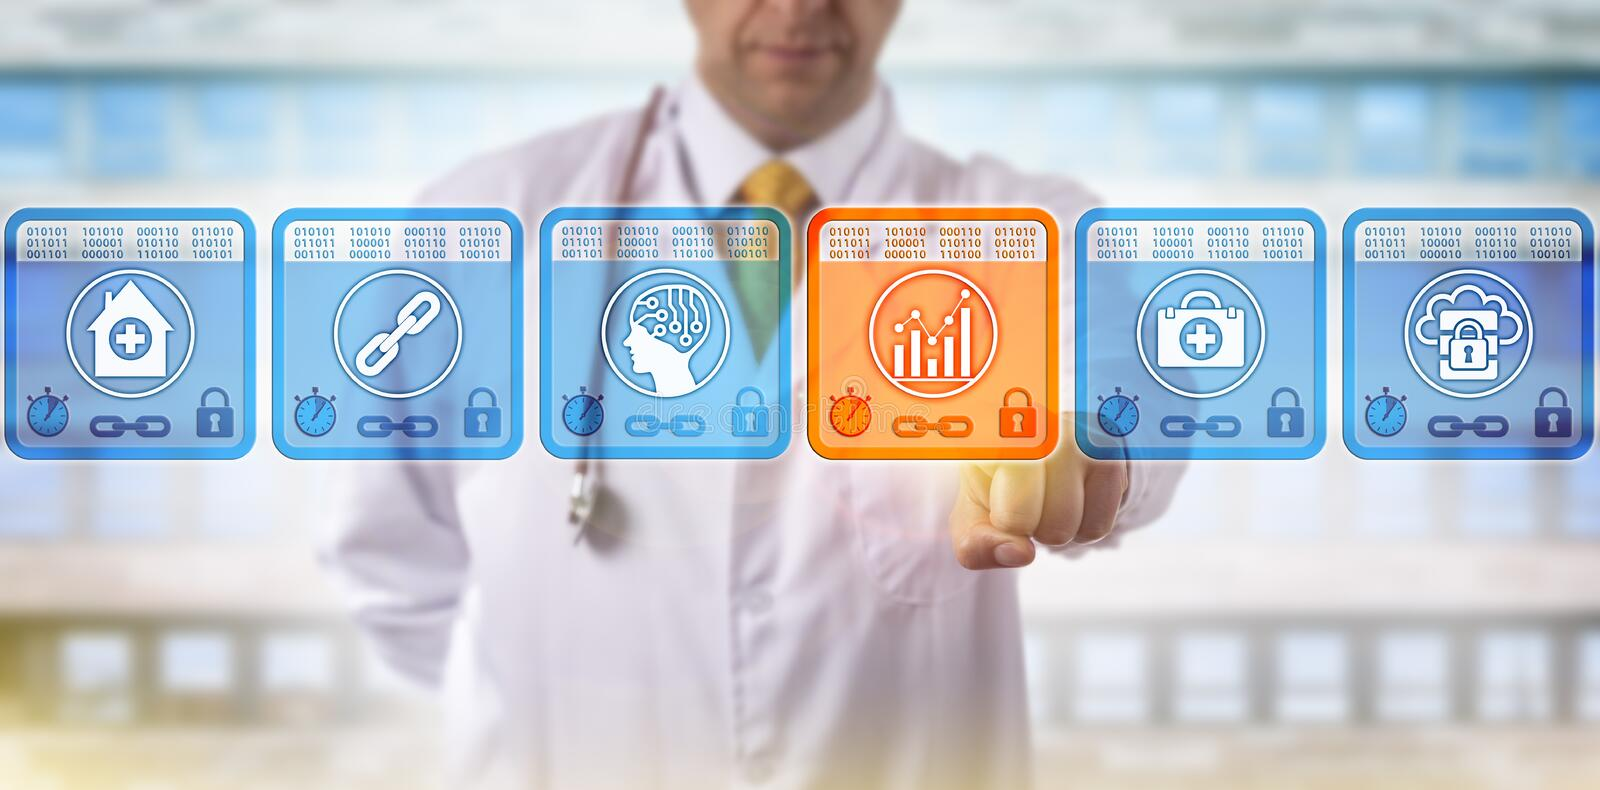 Doctor Selecting Analytics Block In Blockchain. Unrecognizable doctor of medicine selecting analytics data block in medical blockchain. Healthcare IT concept for stock image